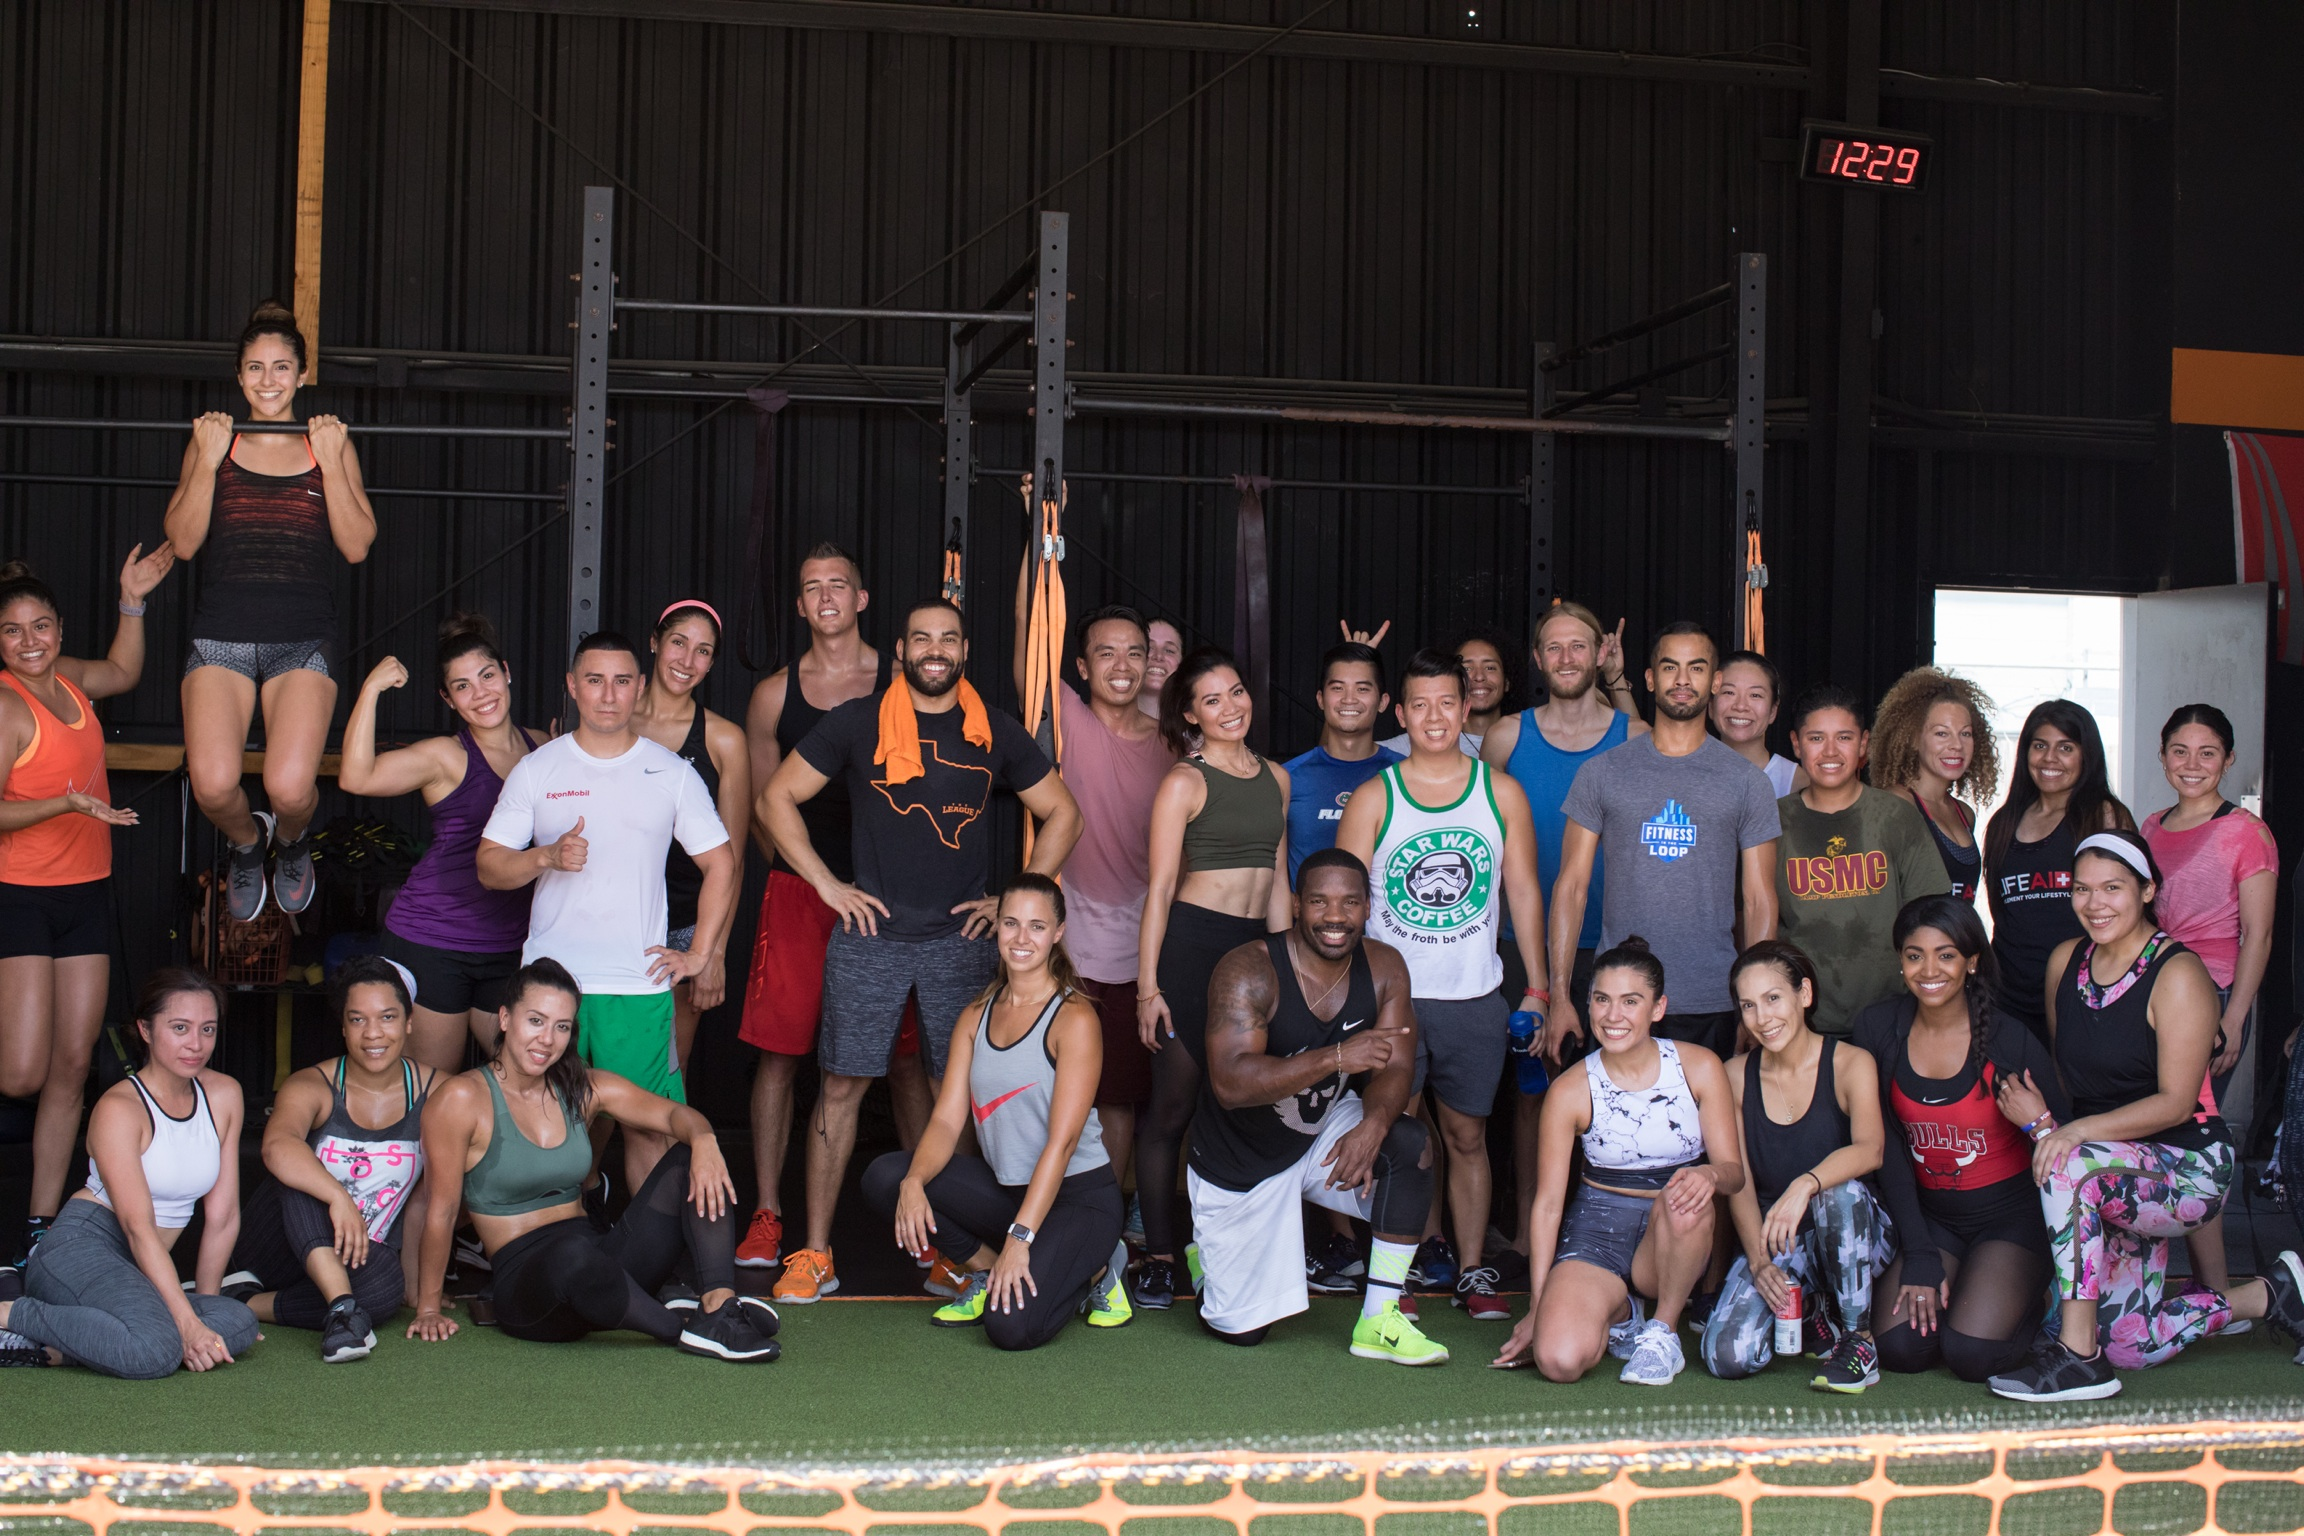 Y'all are awesome! Thank you for giving your shoes to those who need them! <3 Y'all killed the workout!